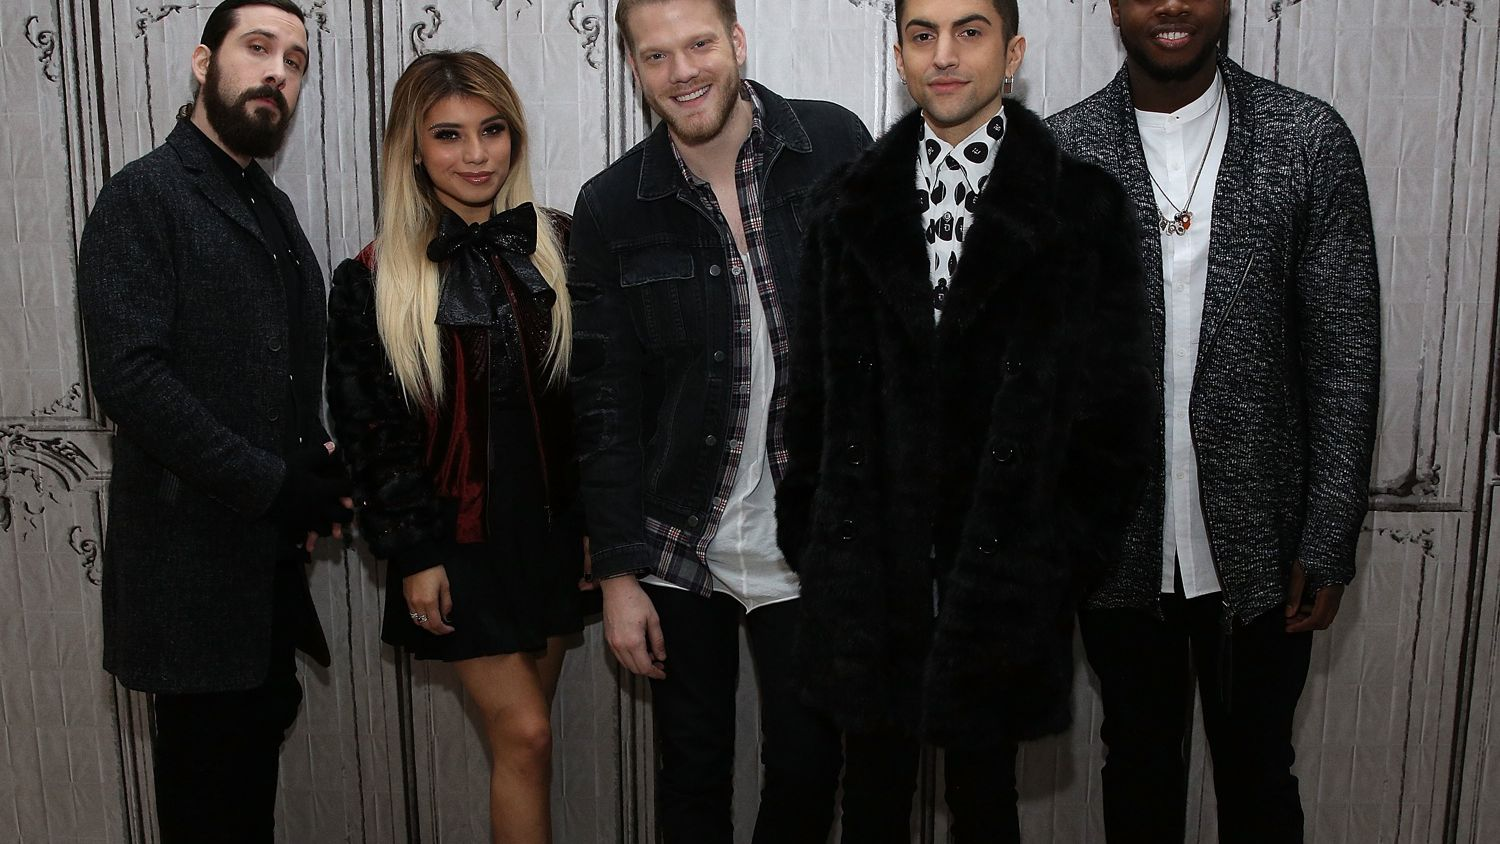 Pentatonix Biography and Profile